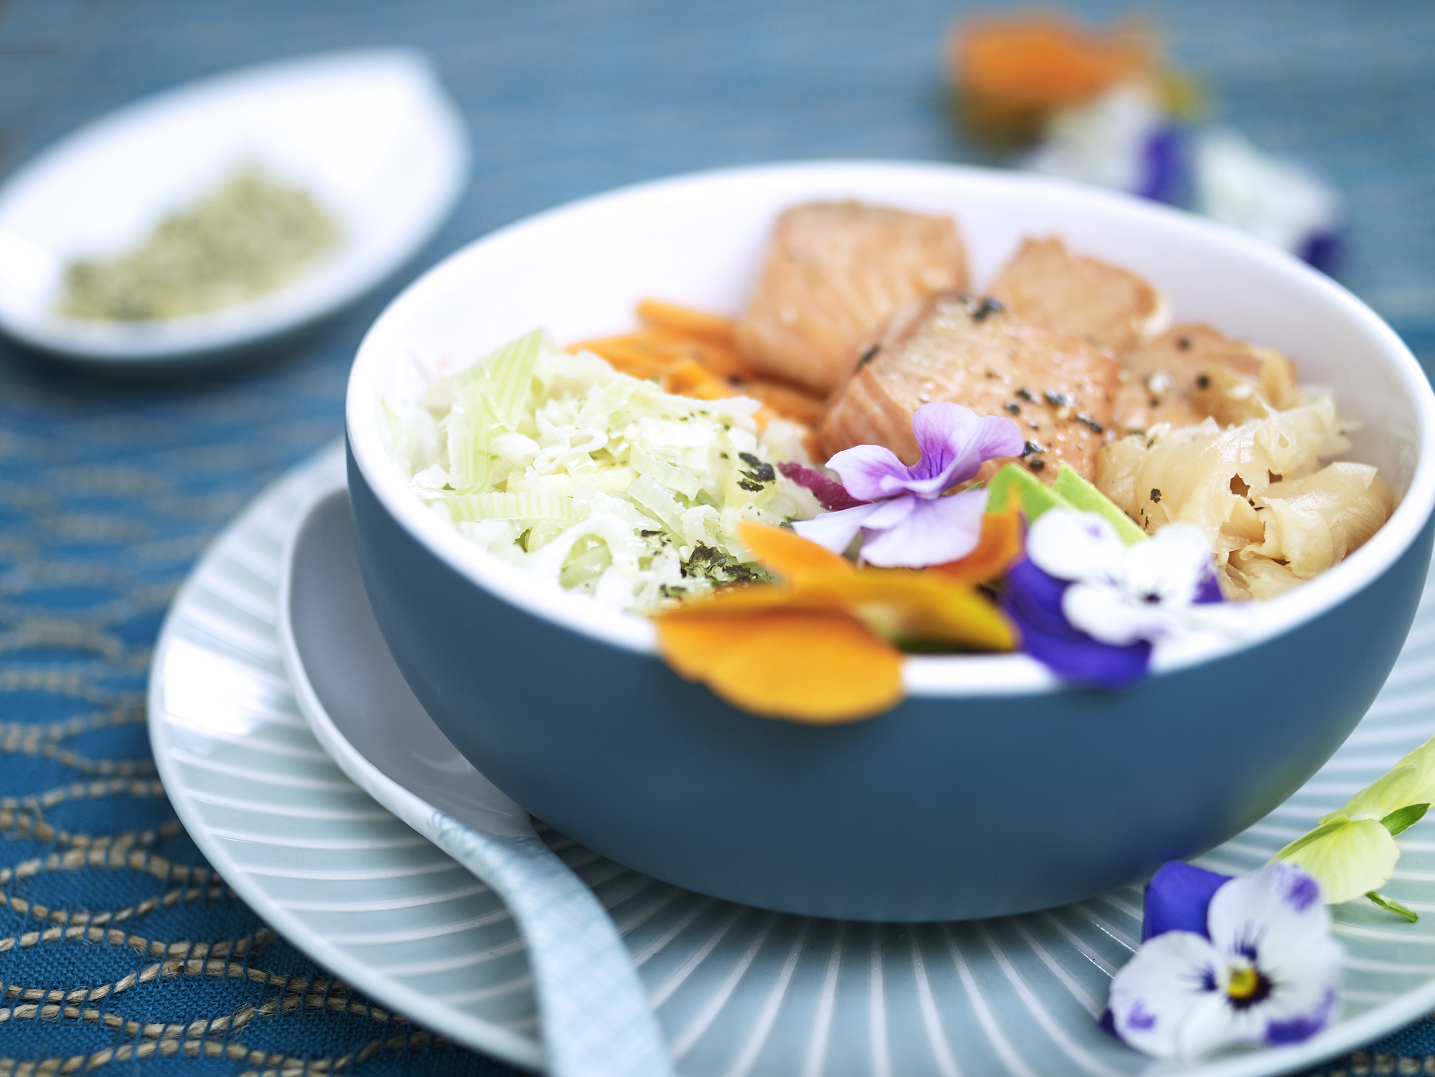 Family Meals Under £10: Leek Poké Bowl Recipe